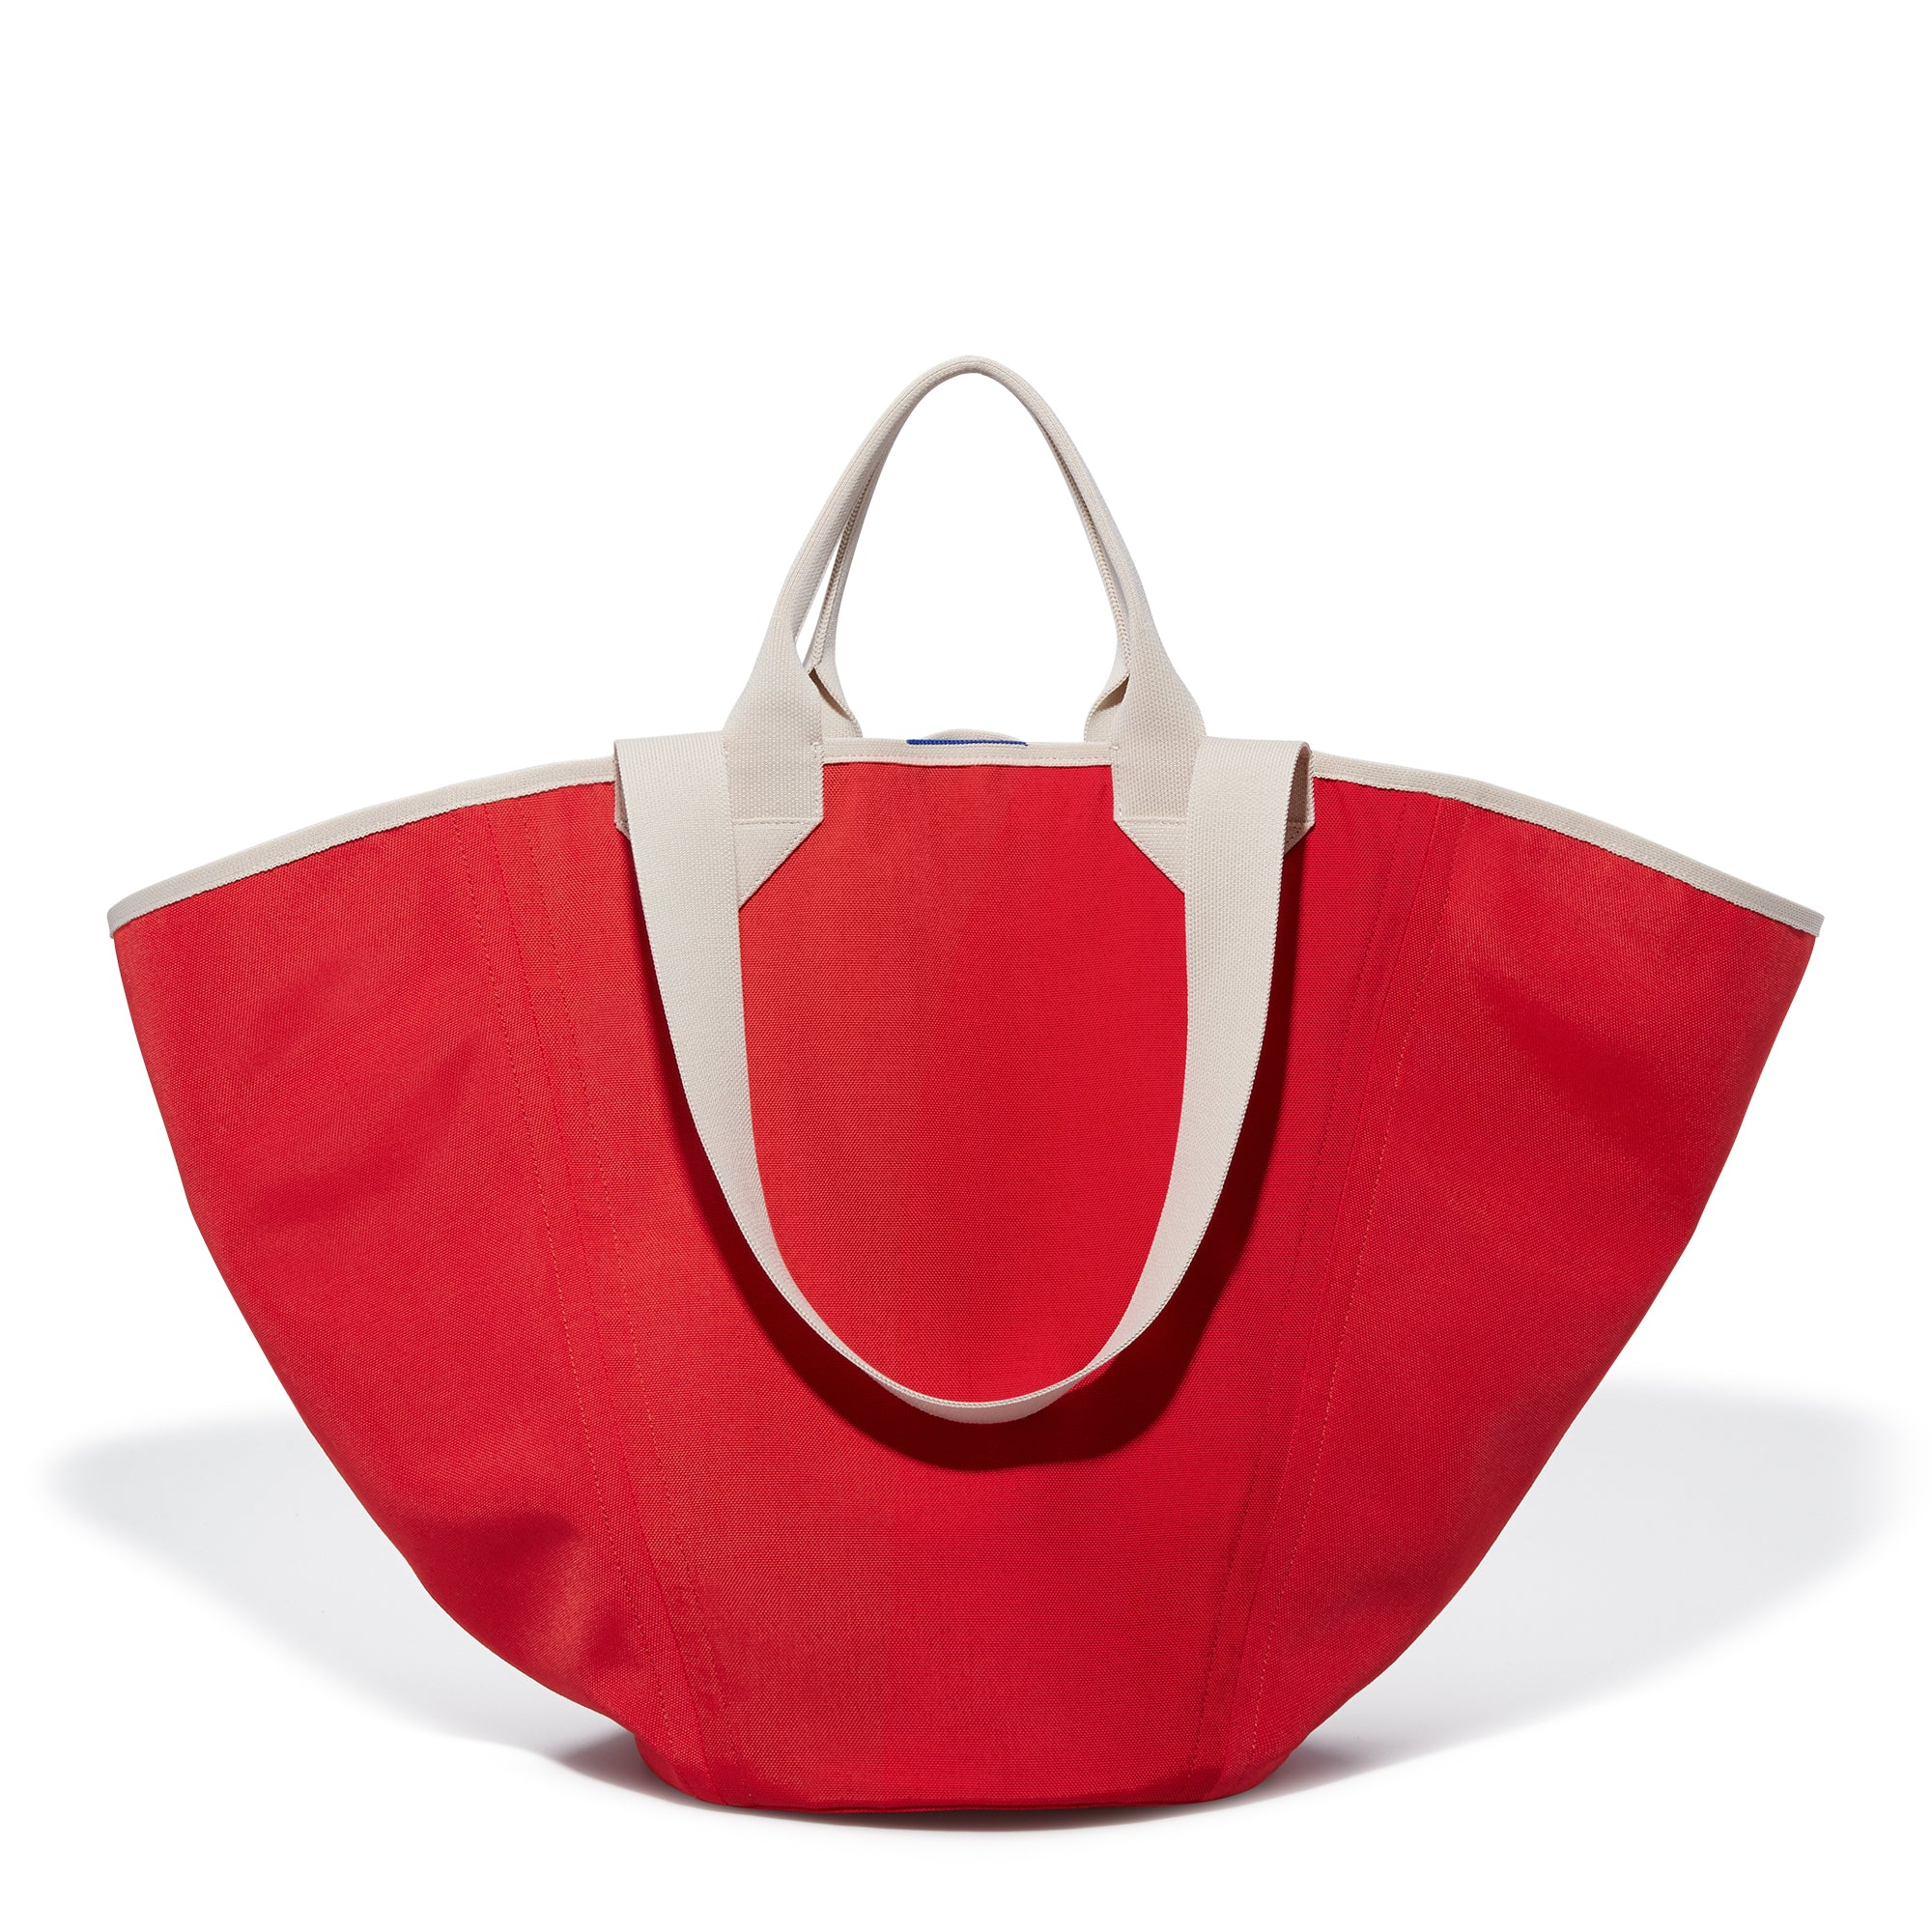 The Reversible Tote in Red & Cobalt shown from the front.